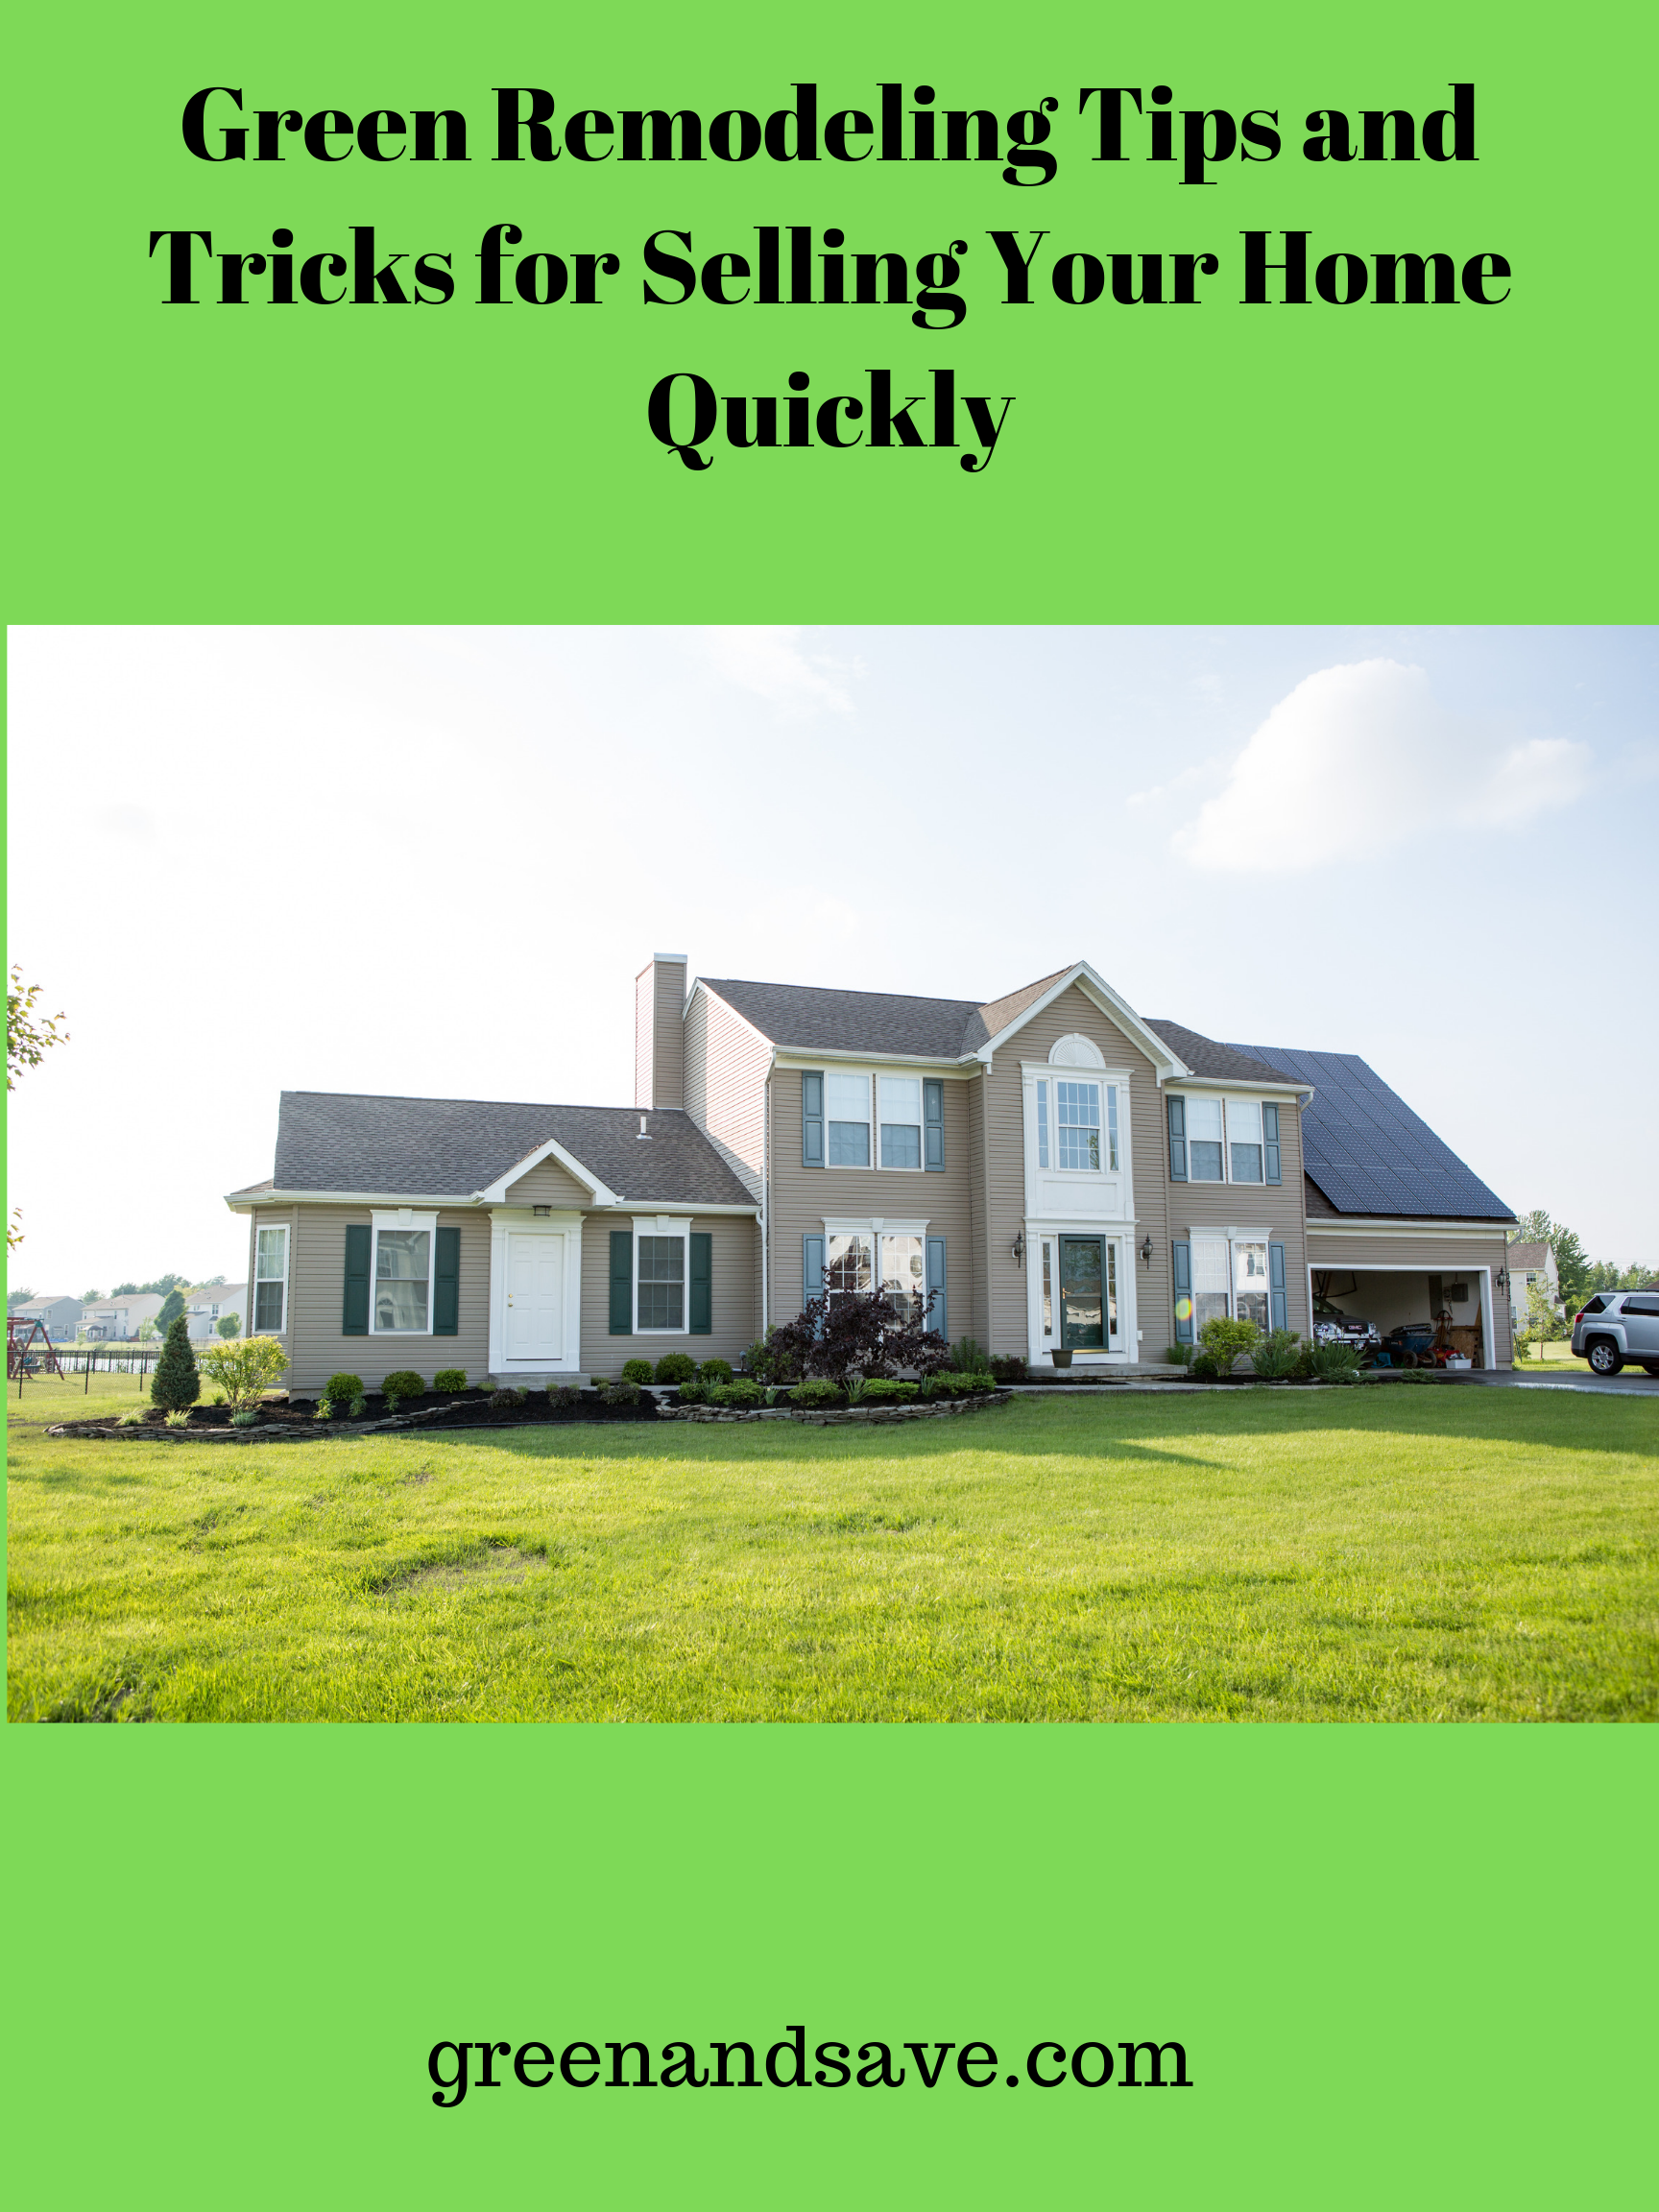 Green Remodeling Tips and Tricks for Selling Your Home Quickly